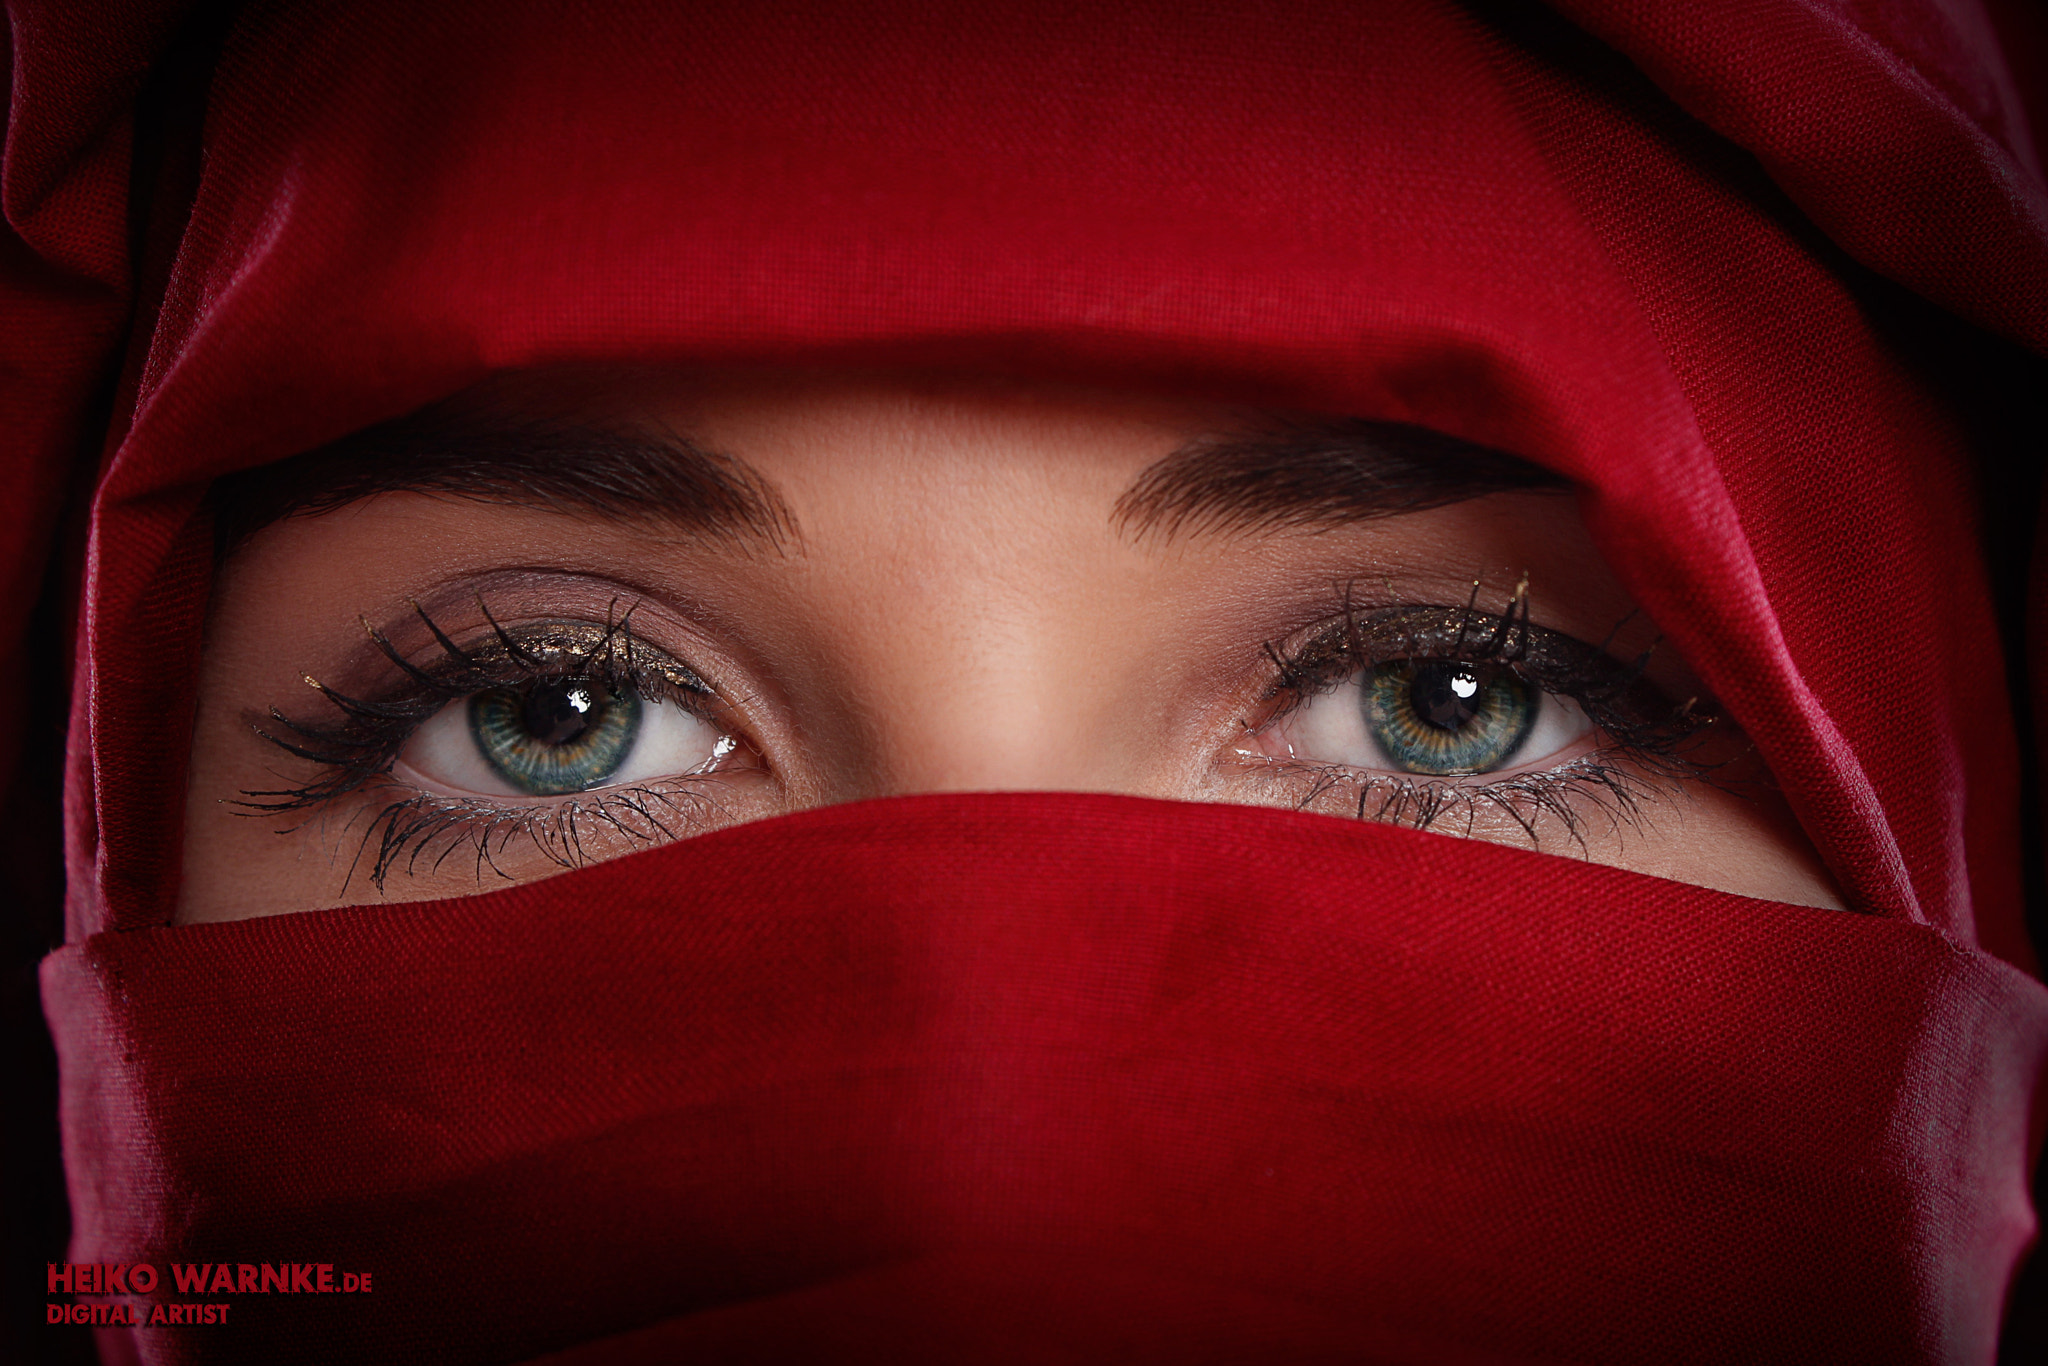 Photograph Eyes by Heiko Warnke on 500px